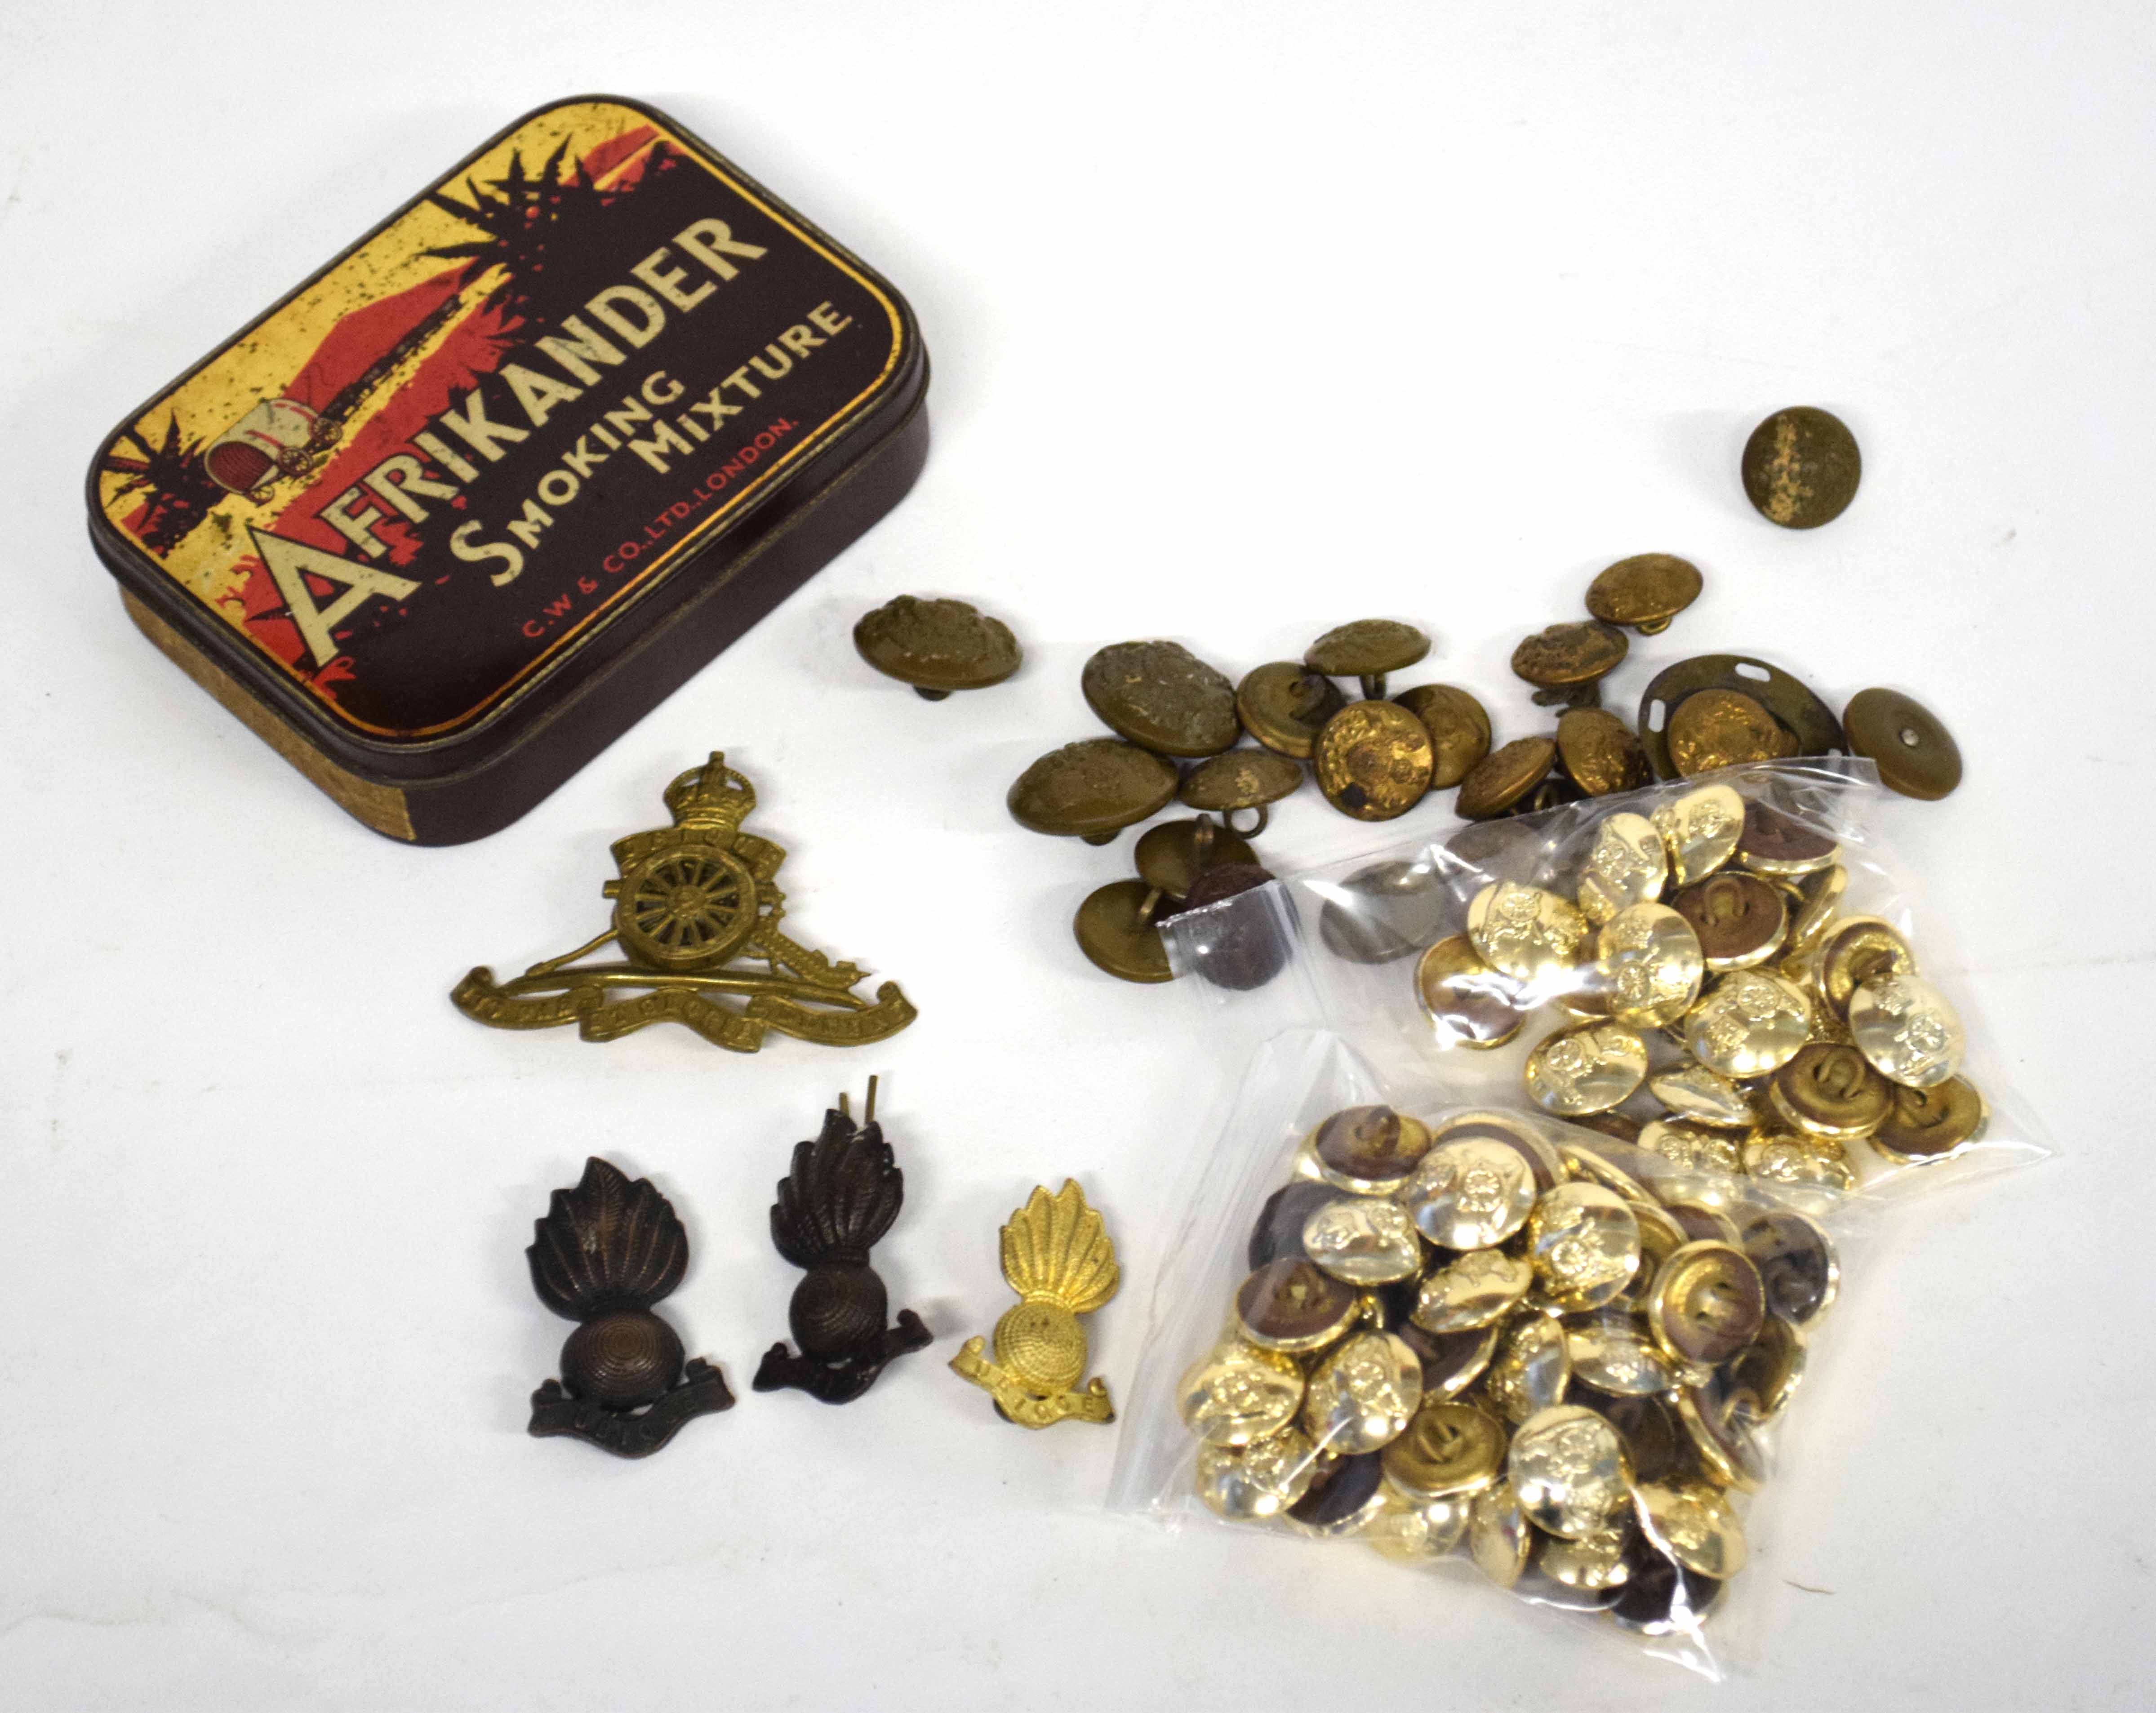 Quantity of Royal Artillery cap badges, collar dogs and buttons and a quantity of General Service